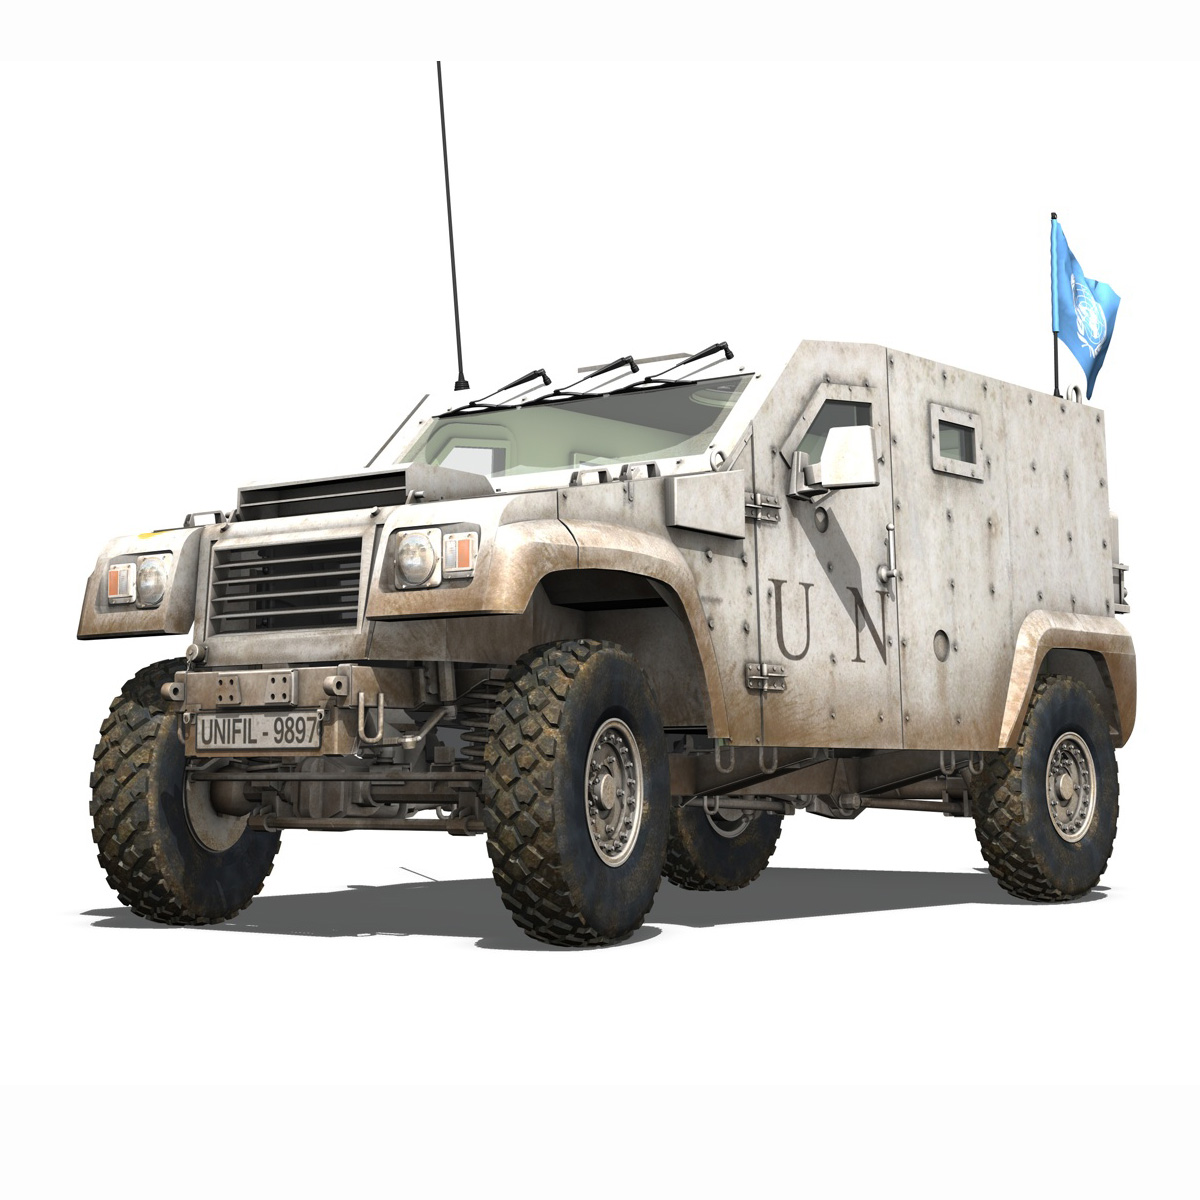 auverland panhard pvp – united nations 3d model 3ds fbx c4d lwo obj 190103